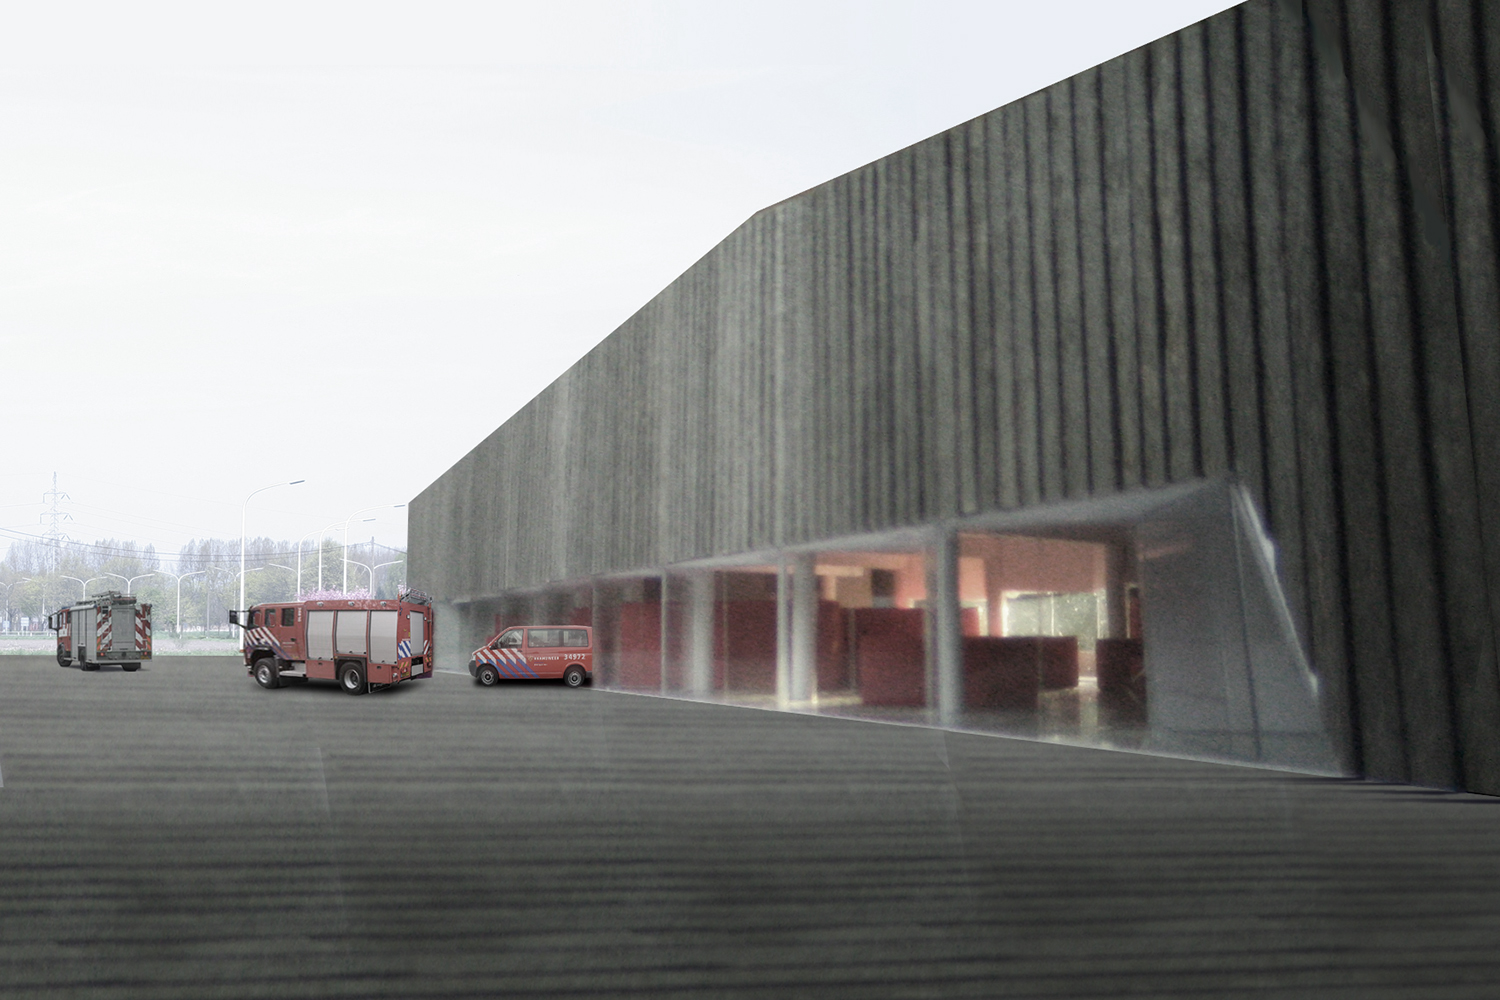 Fire Station Puurs